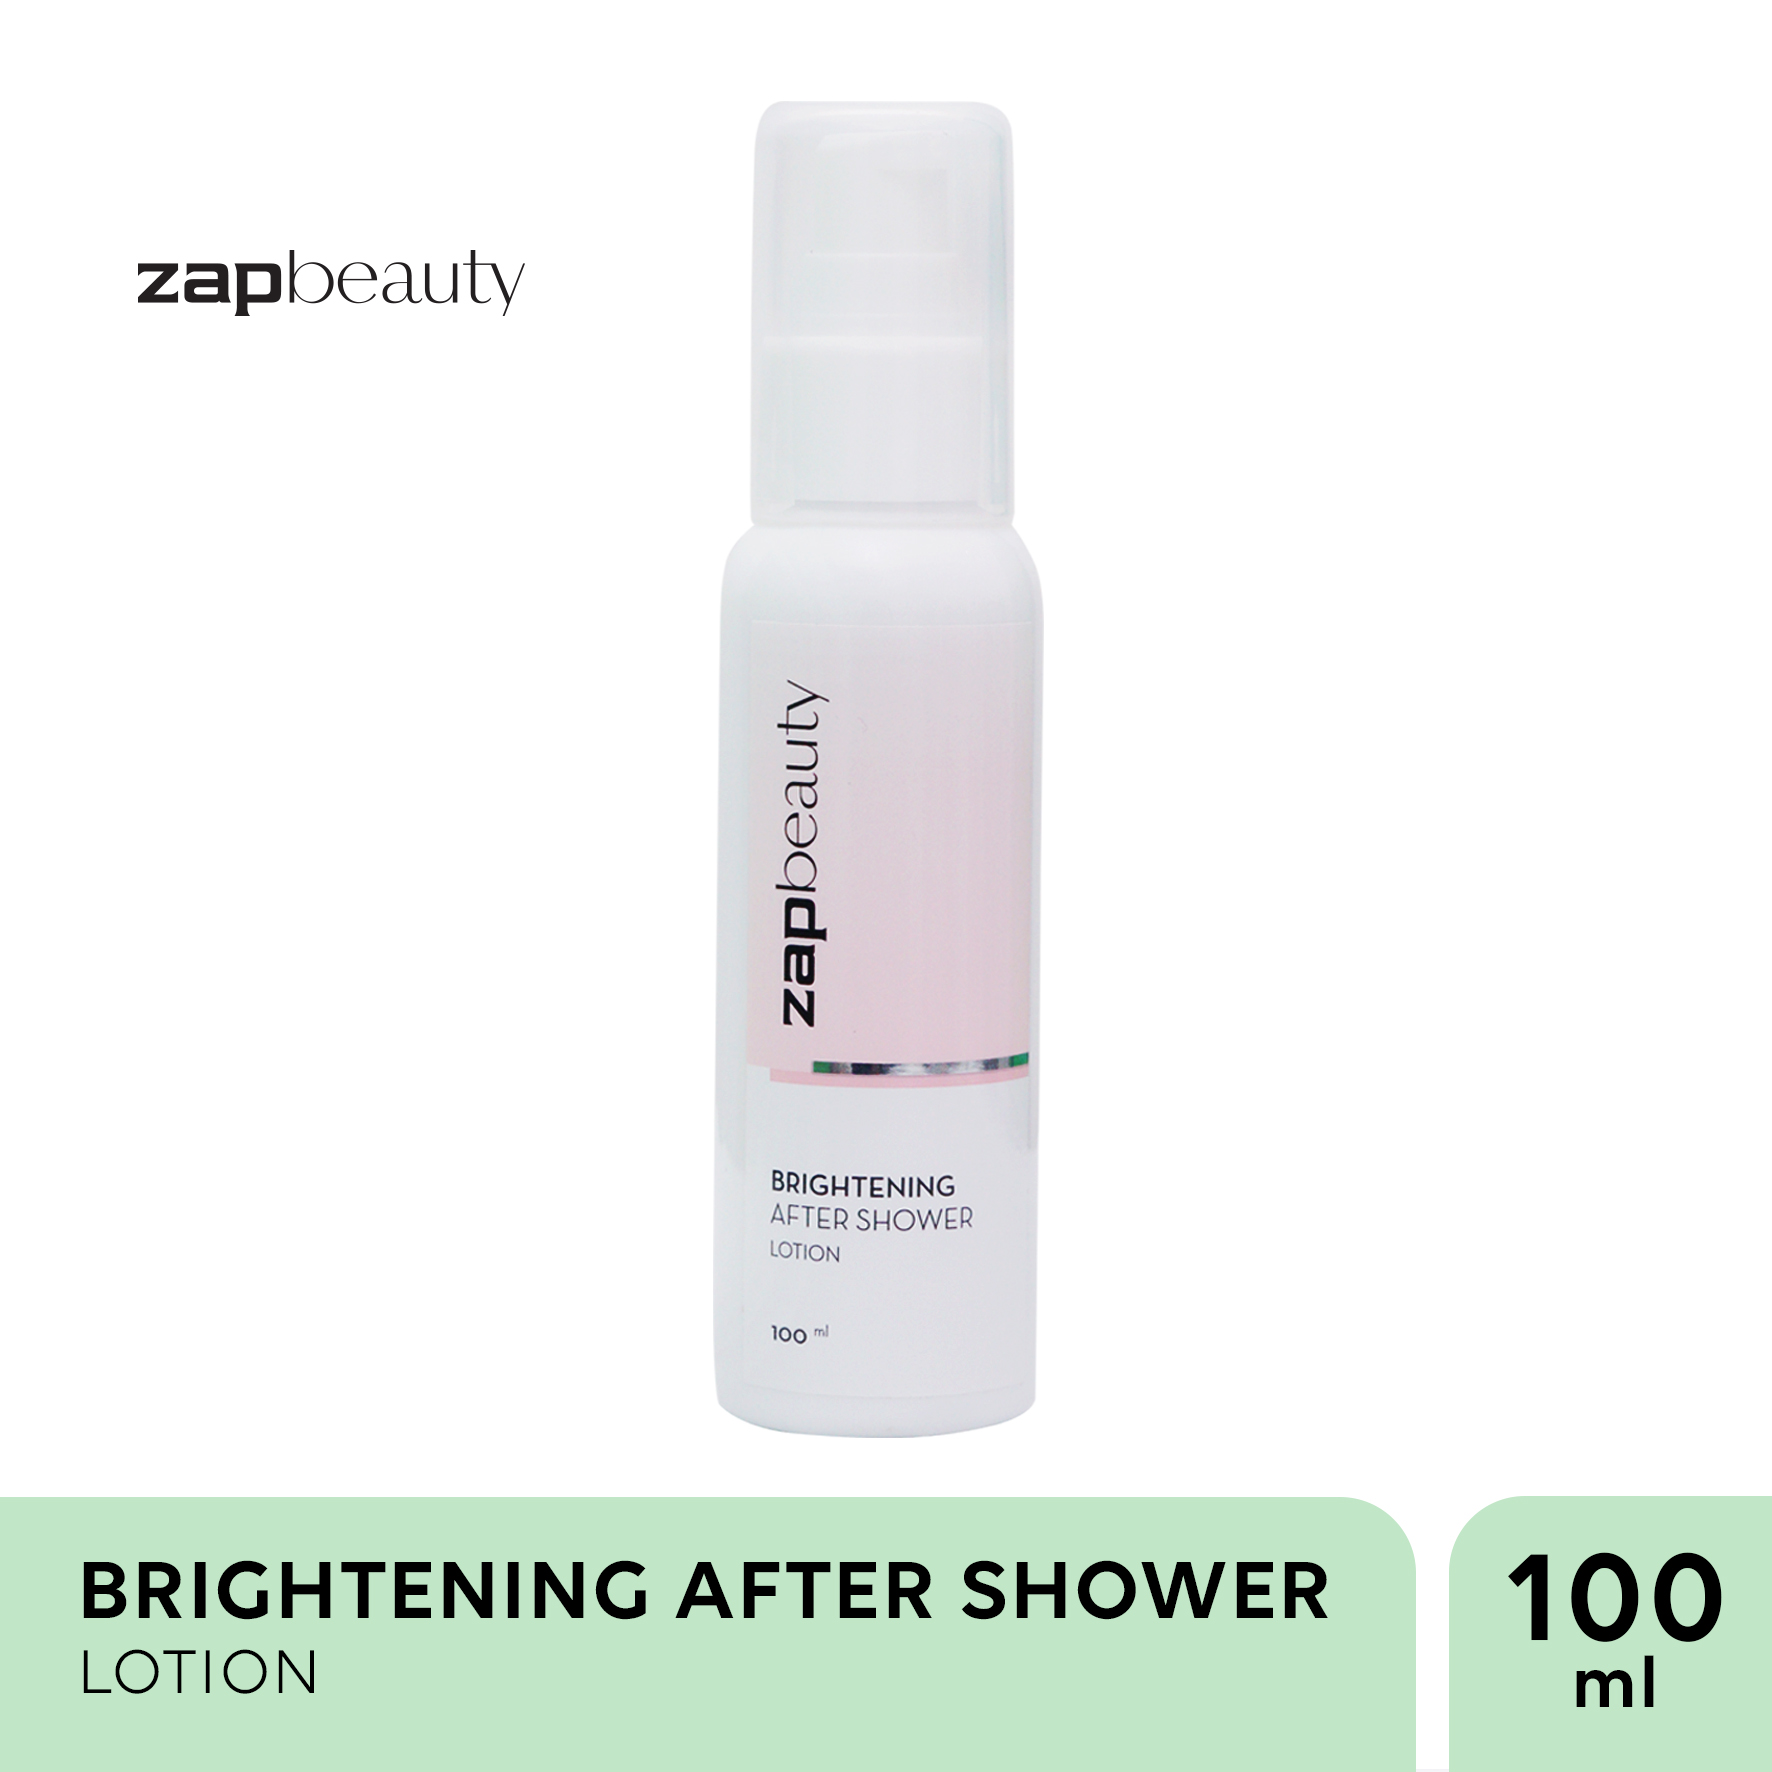 ZAP Beauty Brightening After Shower Body Lotion